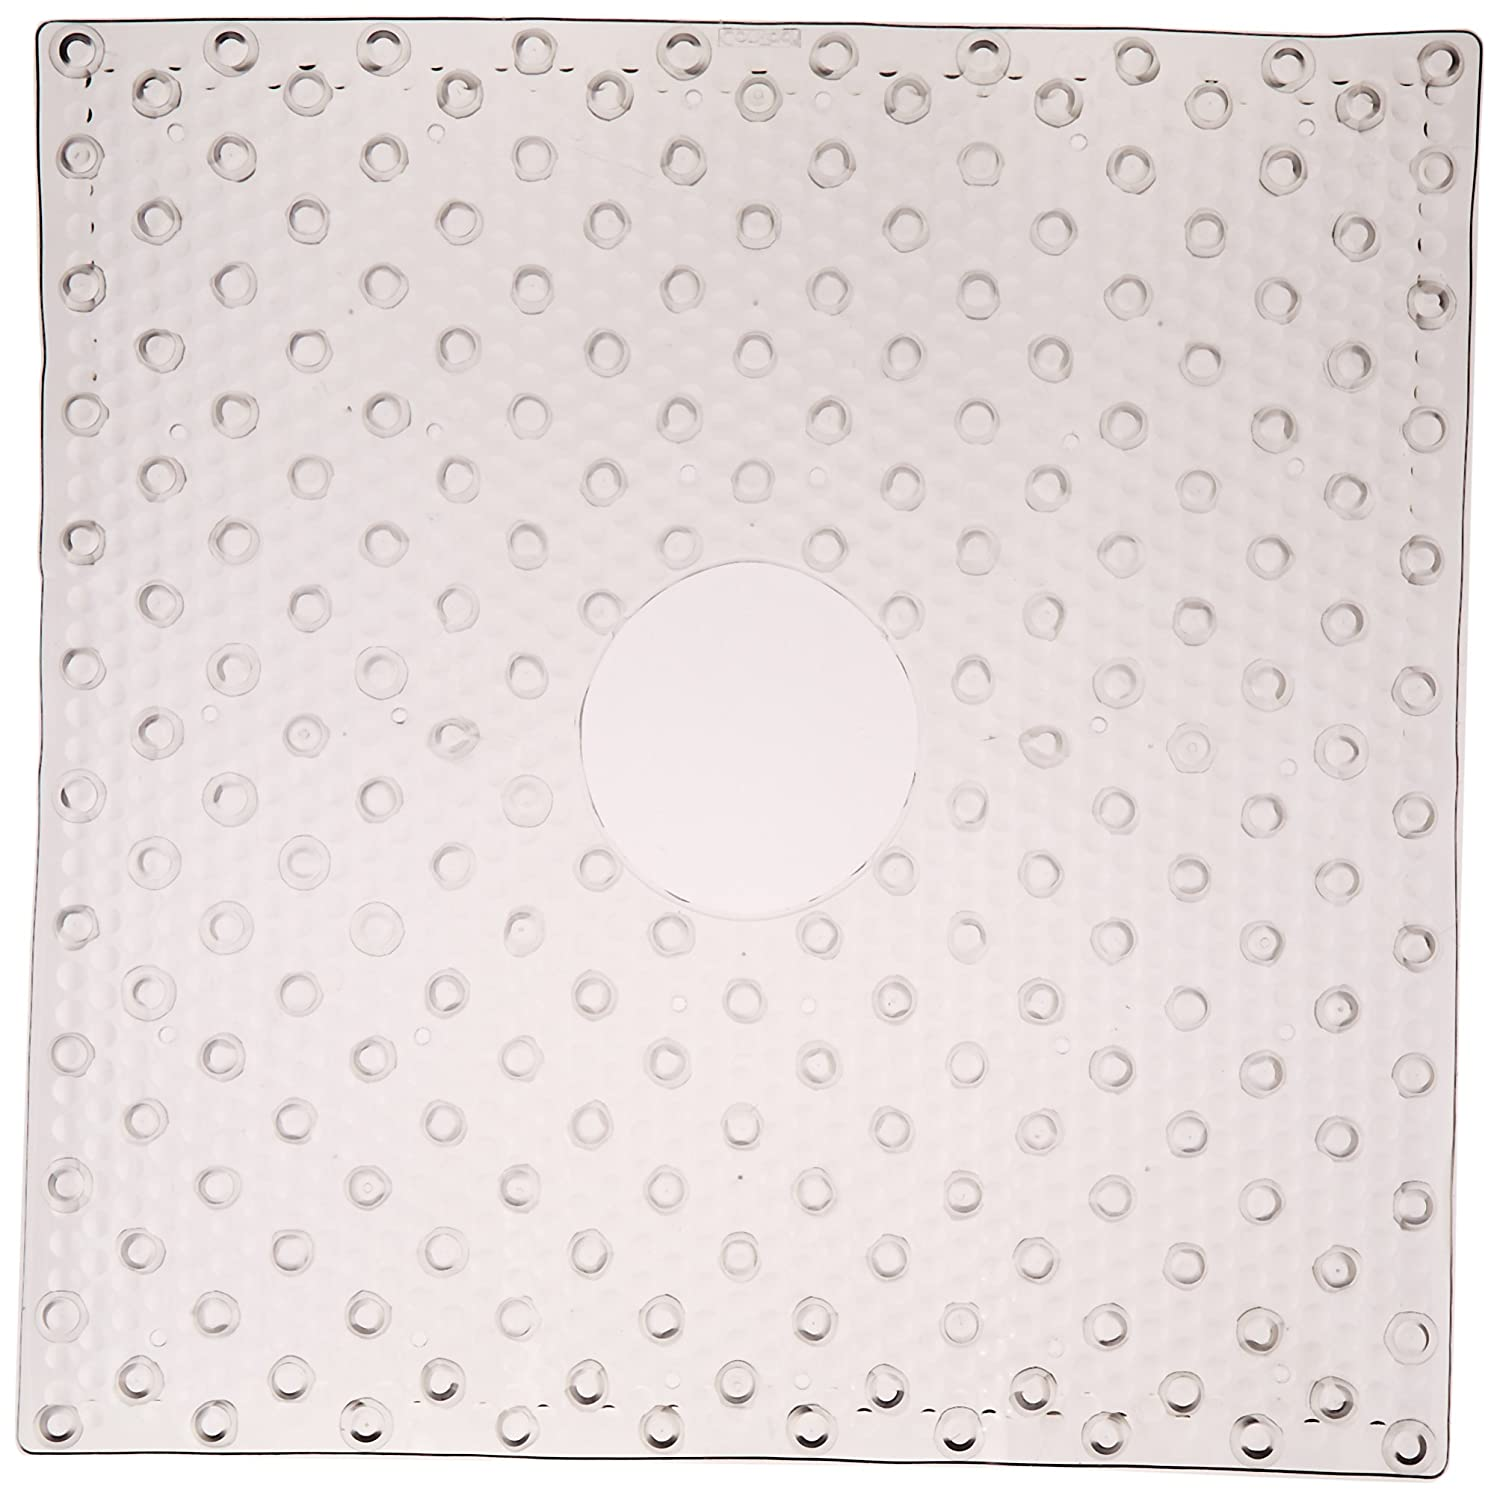 Kittrich Con-Tact Brand 21 by 21-Inch PVC Shower Mat, 21 by 21-Inch SMAT-C3E02-04